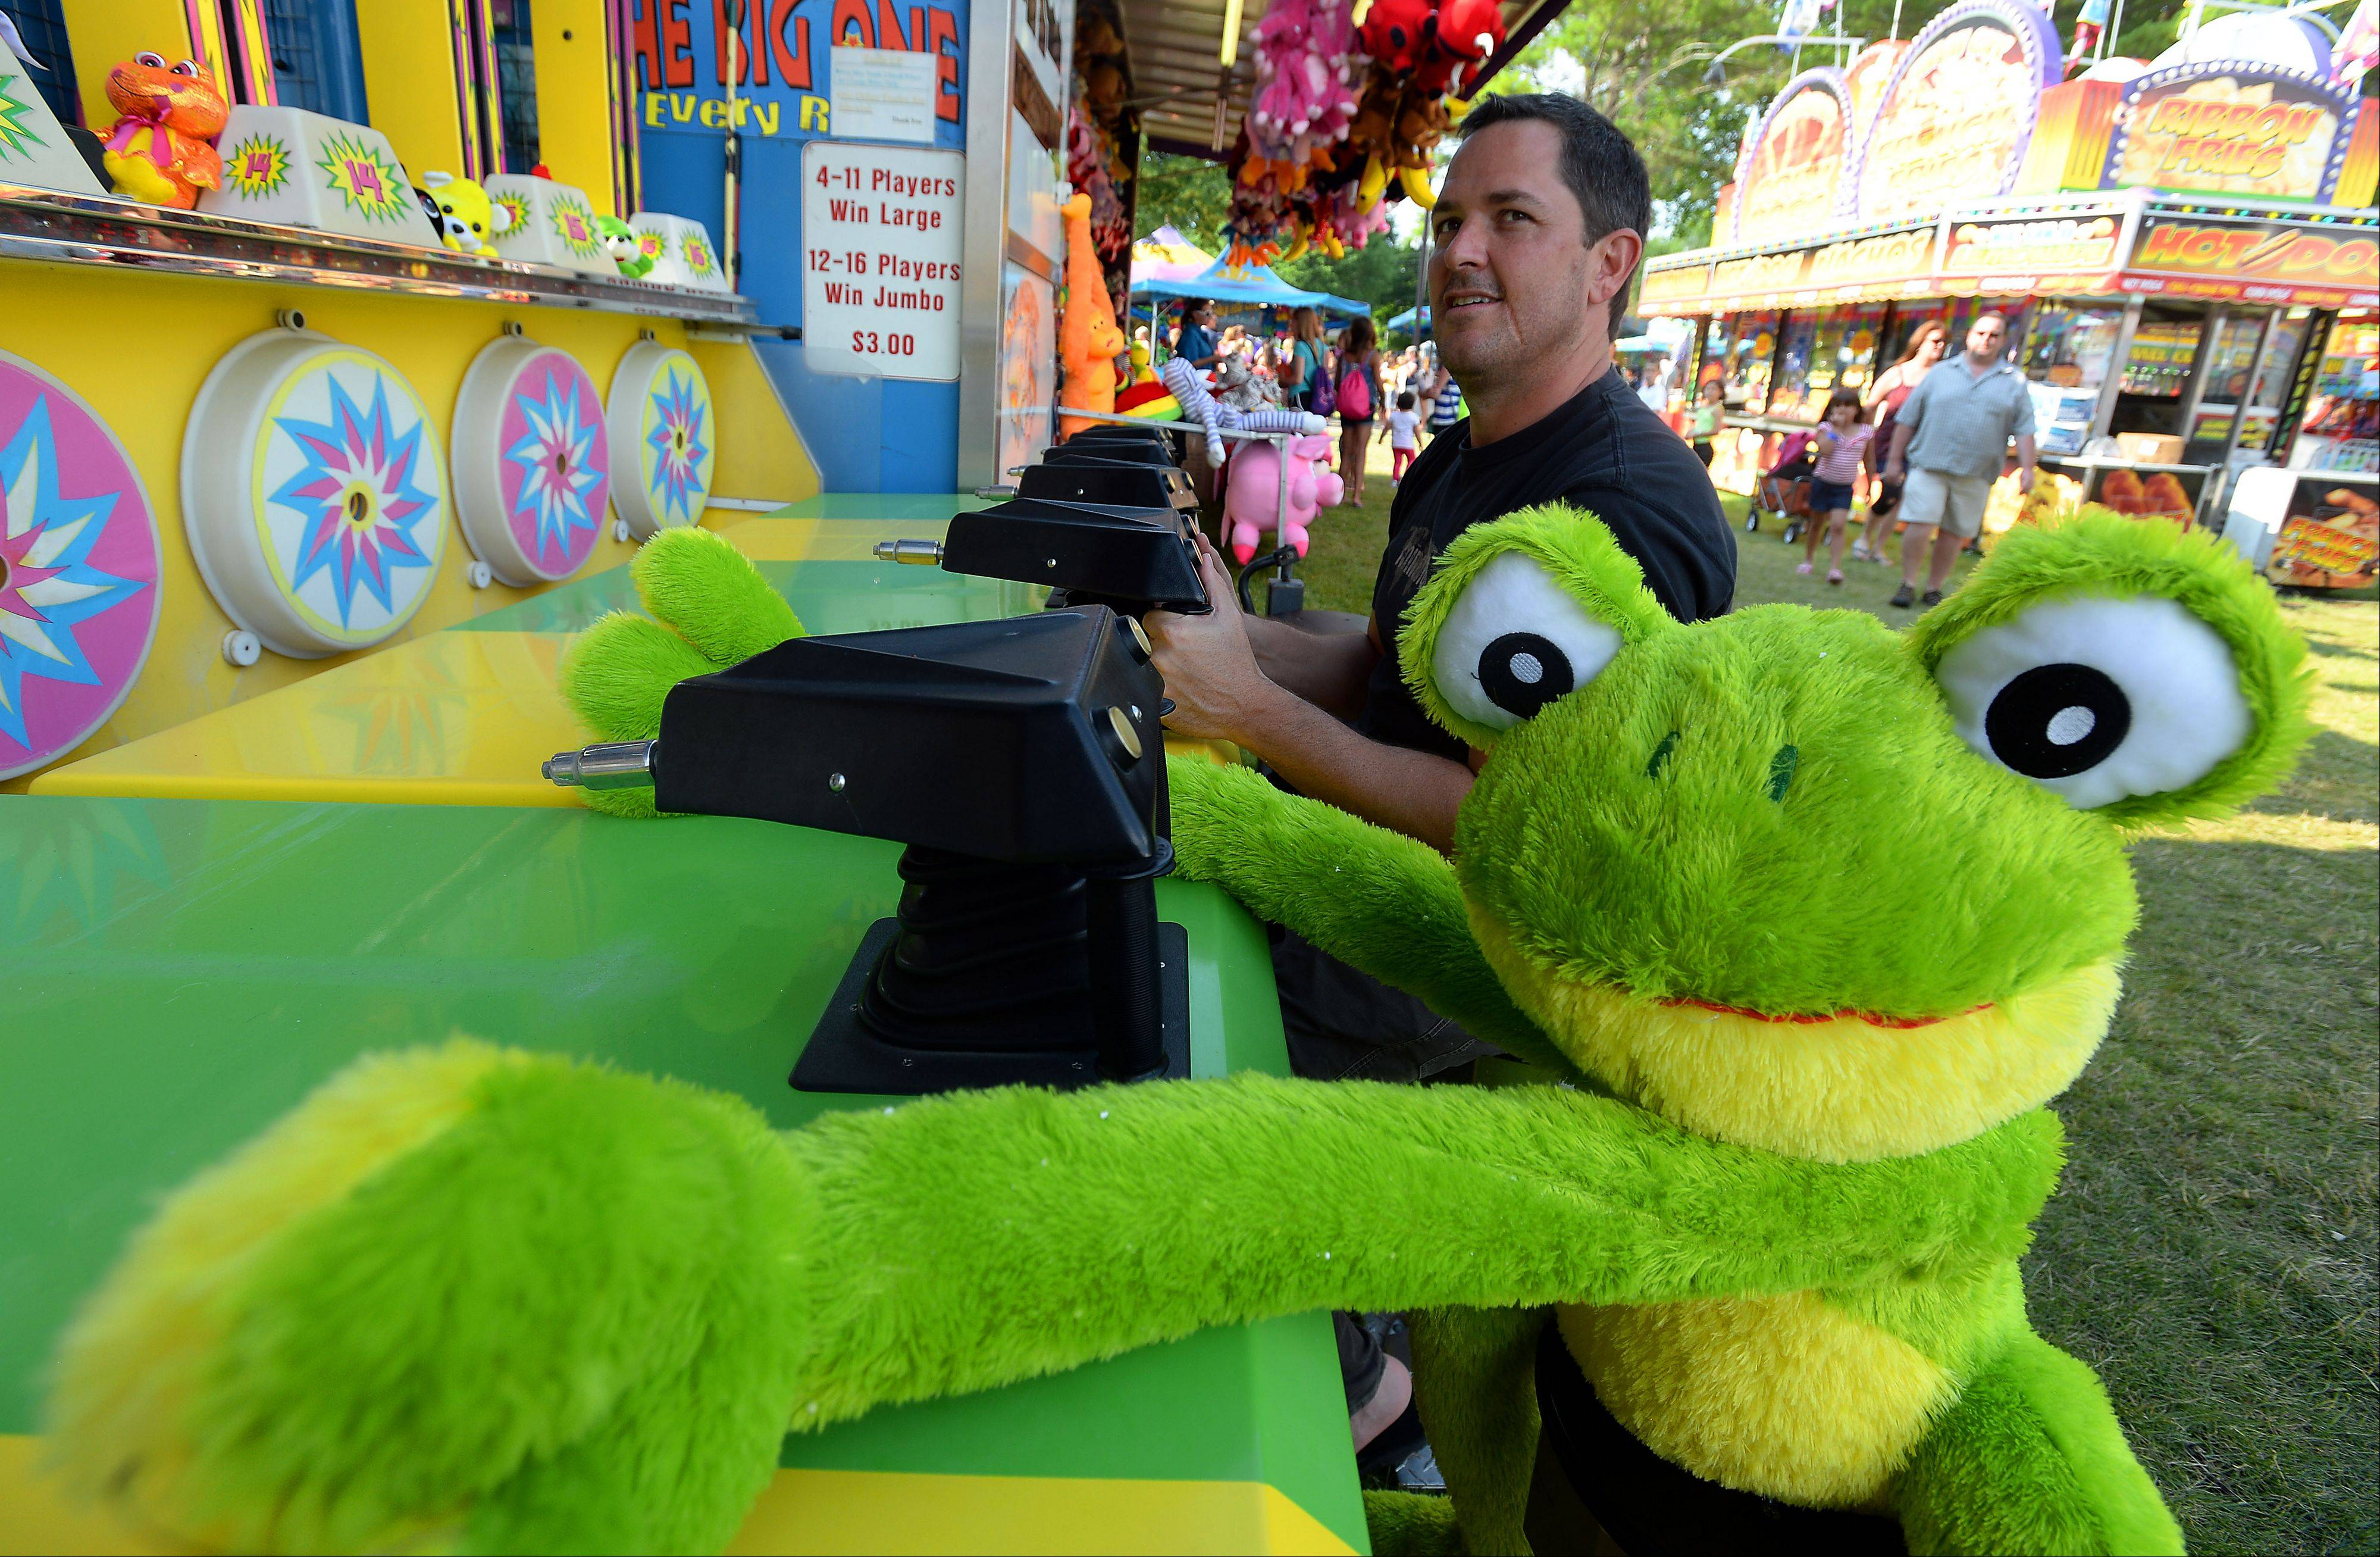 Steve Kirby of Arlington Heights had just won the frog at a basketball game at Frontier Days on Friday so he tried his luck at the water cannon game, with not as much success there.